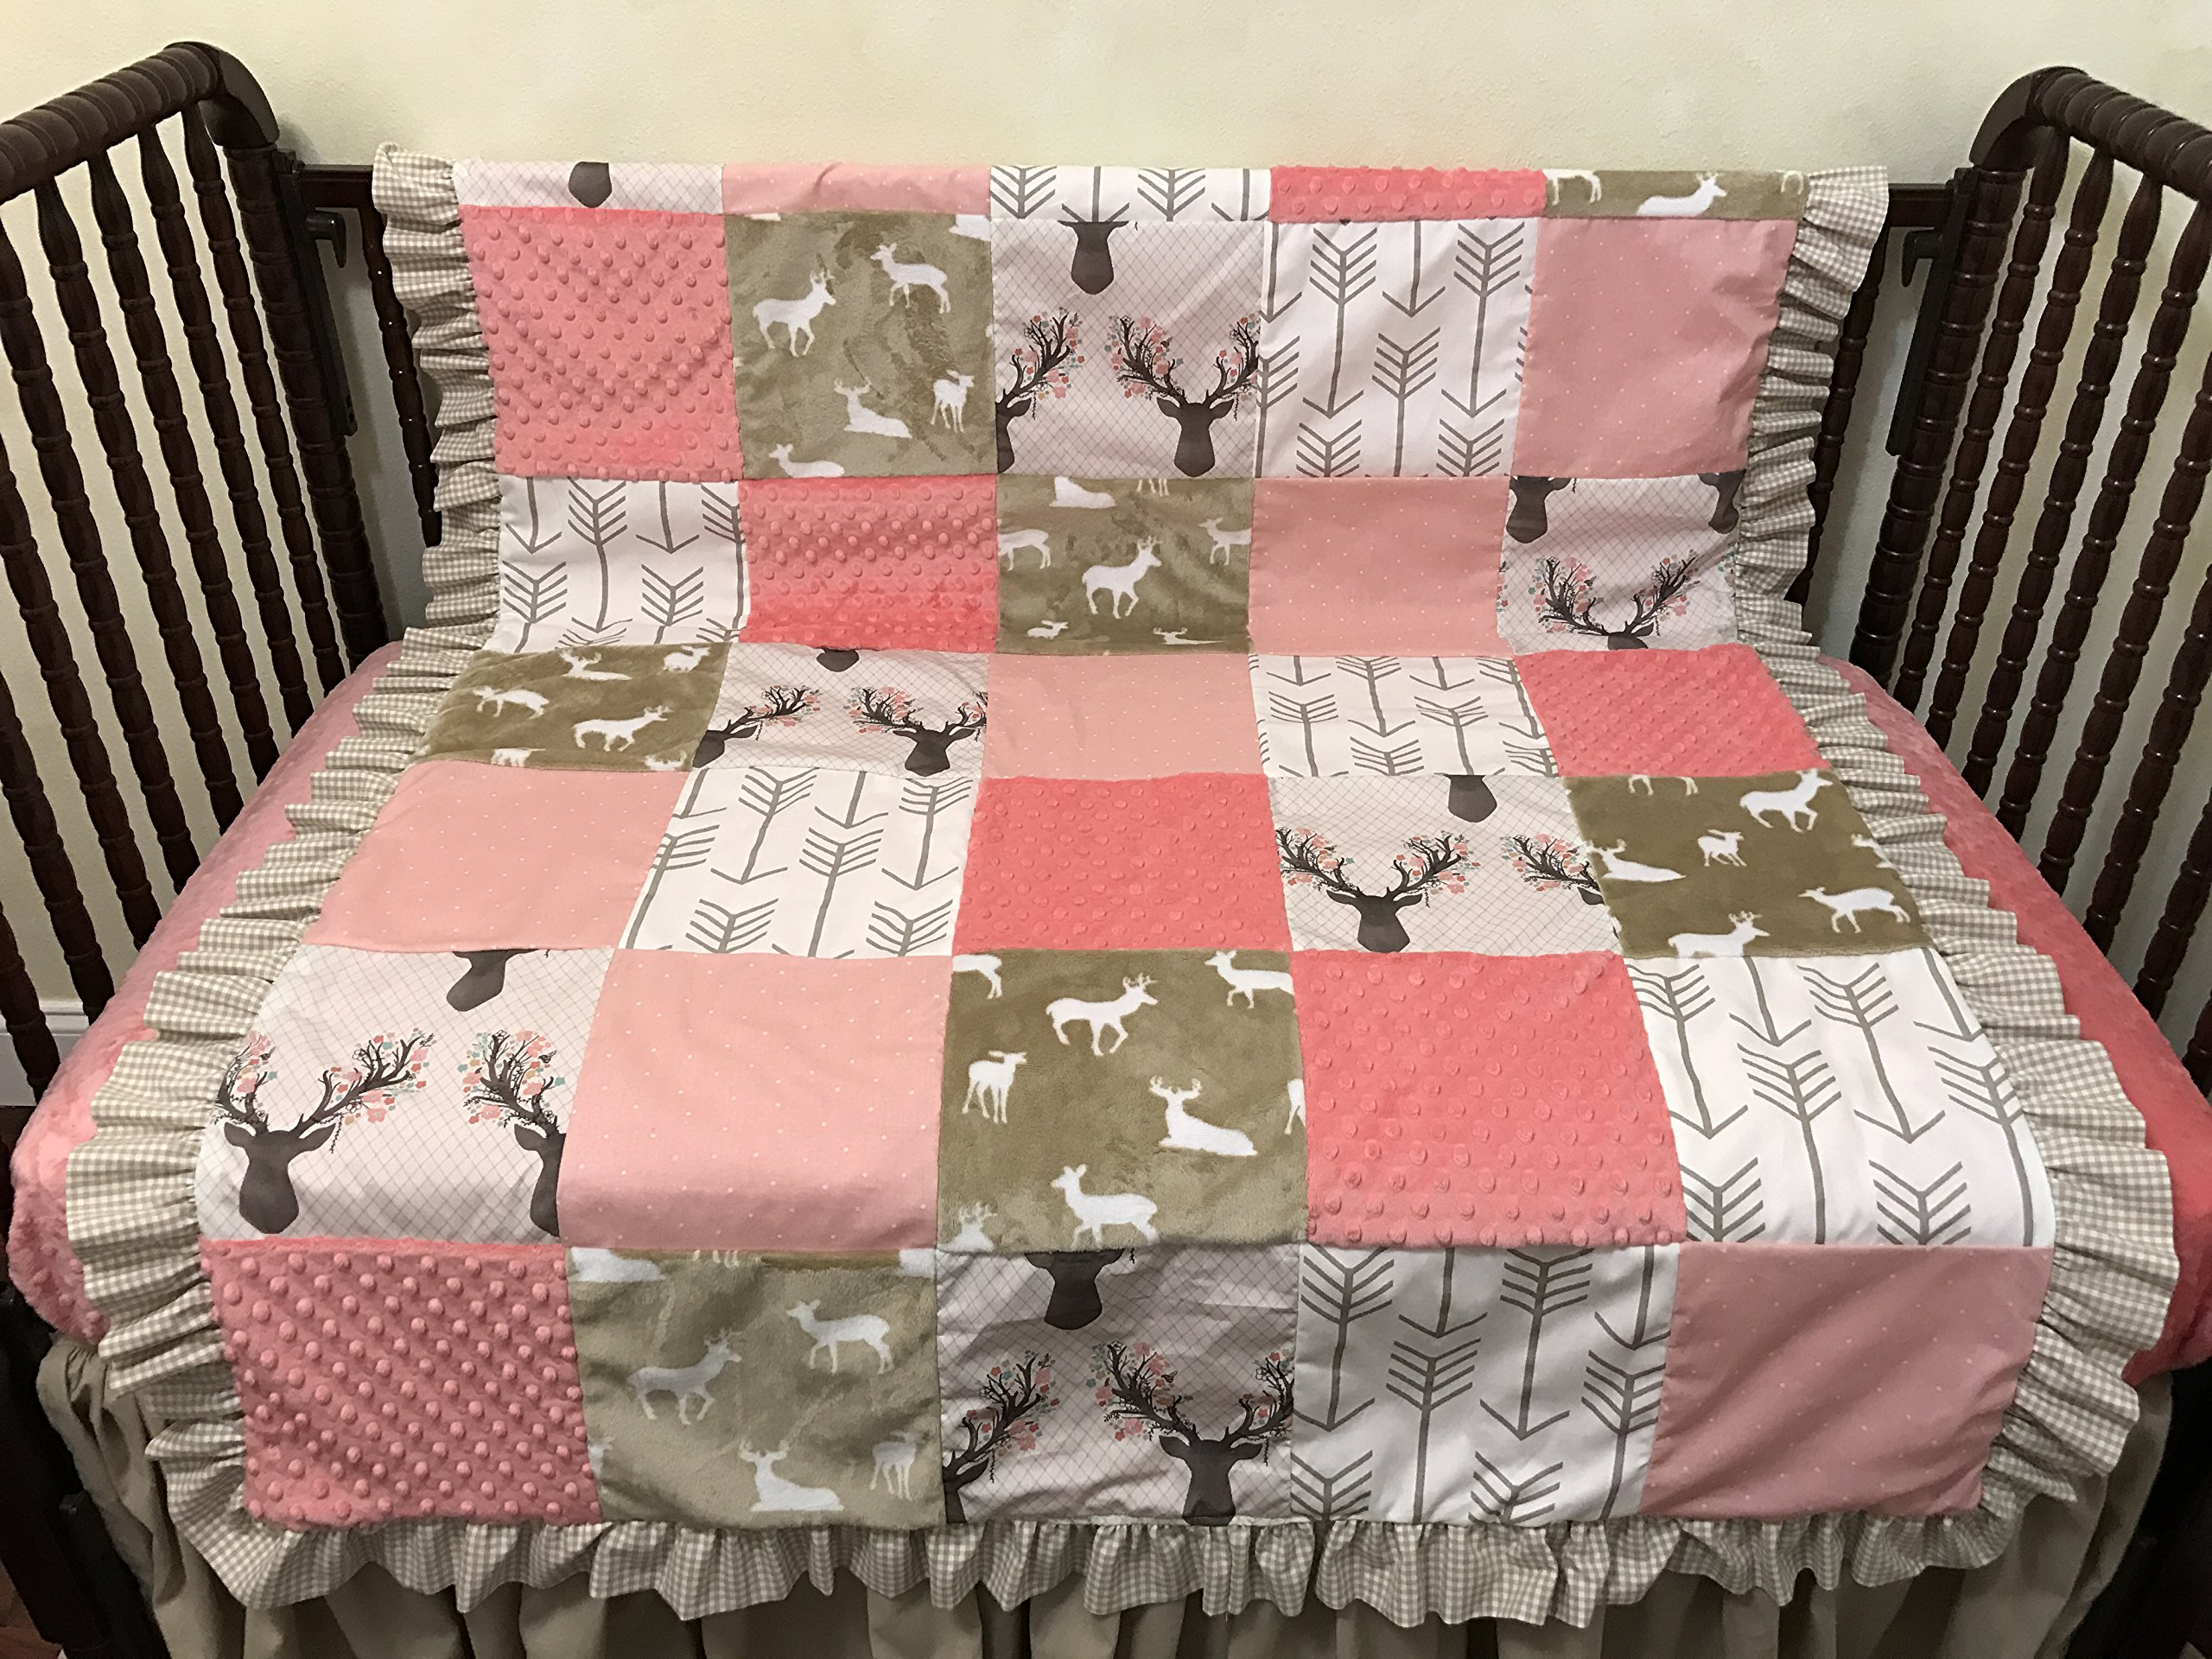 Toddler/Crib Size Blanket, Patchwork Baby Blanket in Coral and Tan with Deer, Arrows, and Dots